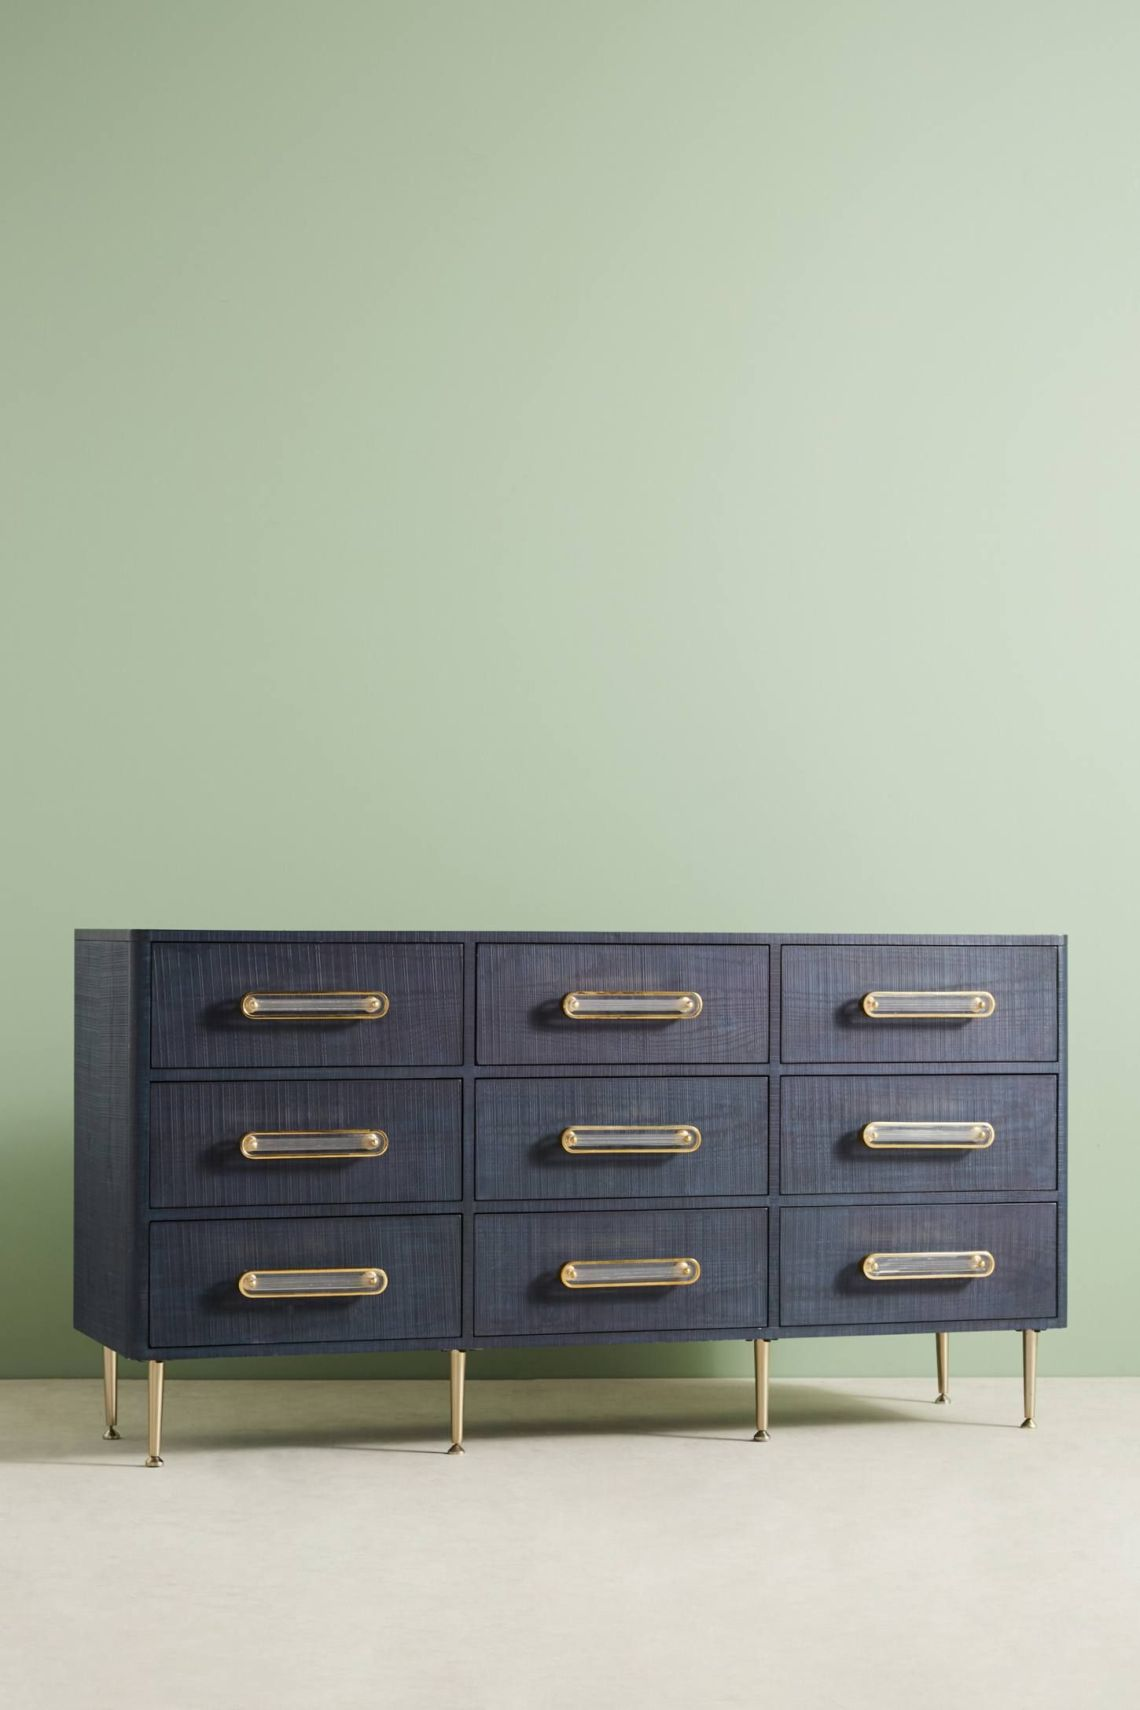 Apartment Anthropologie Armoire - b5cd6b57f5839fb92b8765f7c6350d42_Popular Apartment Anthropologie Armoire - b5cd6b57f5839fb92b8765f7c6350d42  Pic_868733.jpg